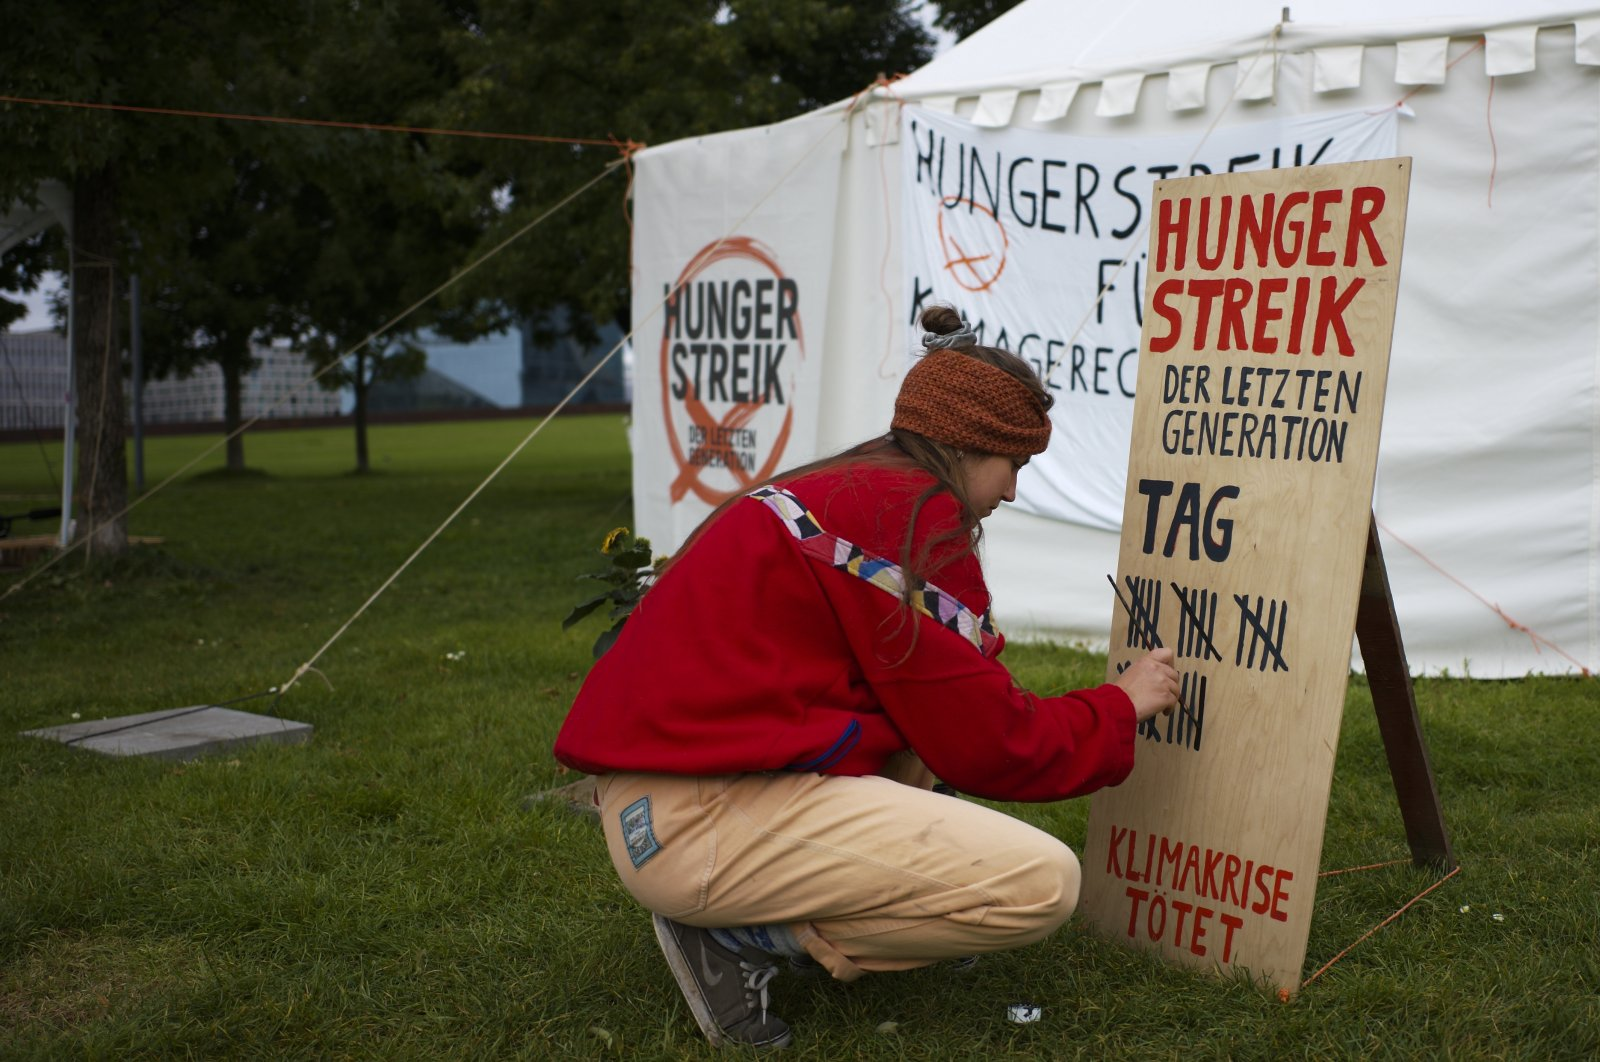 Climate activist Carla Hinrichs makes a line on a wooden board to count the days a small camp of climate activists have been in a hunger strike, near the chancellery in Berlin, Germany, Sept. 22, 2021. (AP Photo)